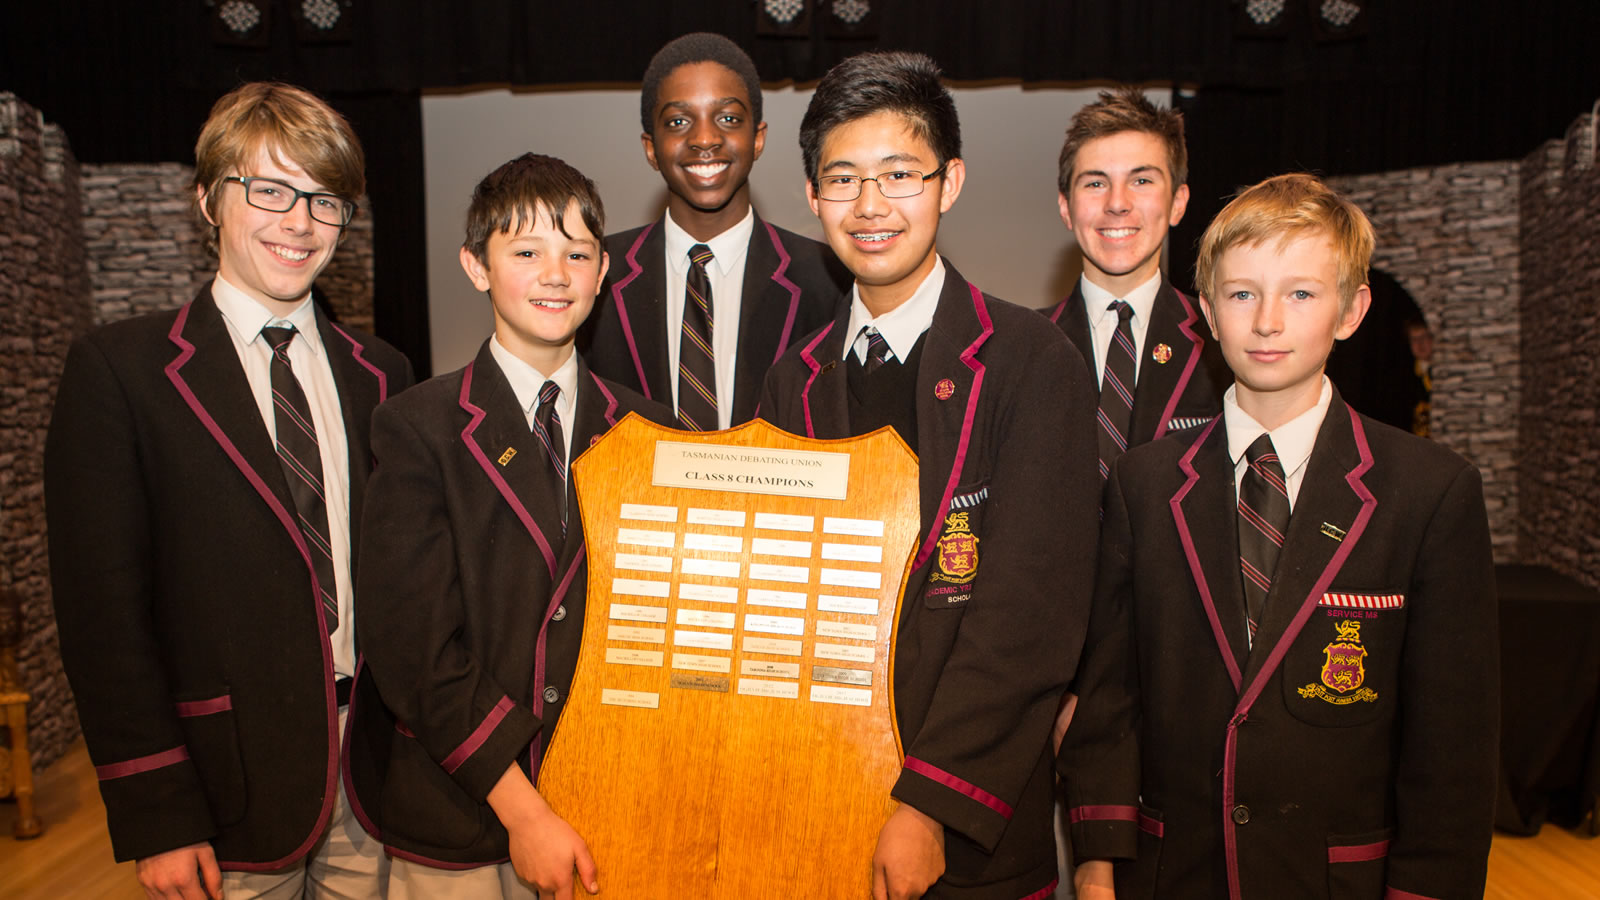 Year 8 Debating Team (Tasmanian Debating Union Champions 2014). (large)